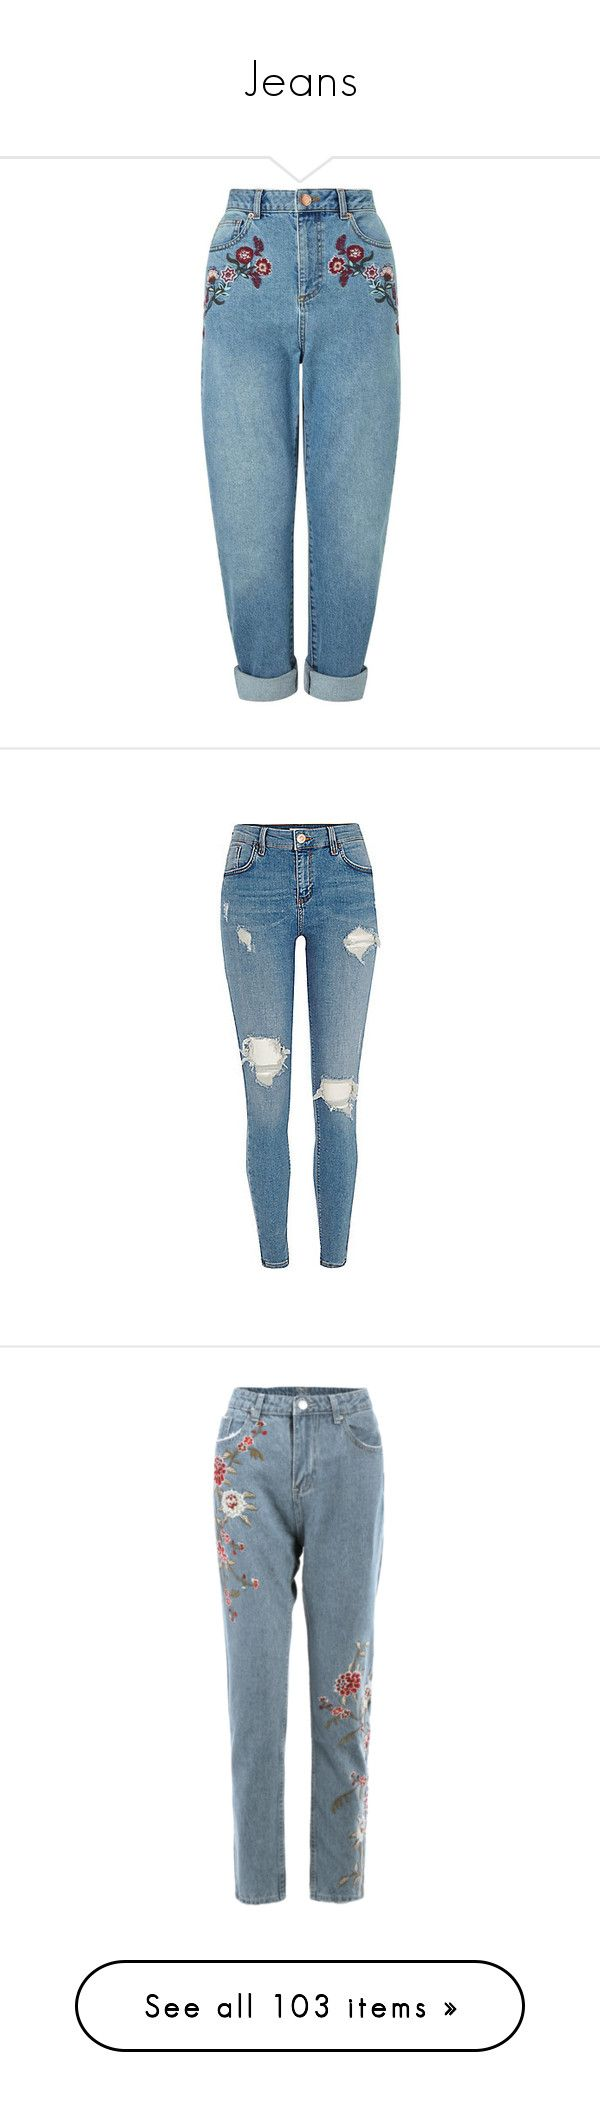 """Jeans"" by ekaterina-stepura on Polyvore featuring jeans, pants, bottoms, pantalones, blue, blue jeans, embroidery jeans, miss selfridge jeans, embroidered jeans и miss selfridge"